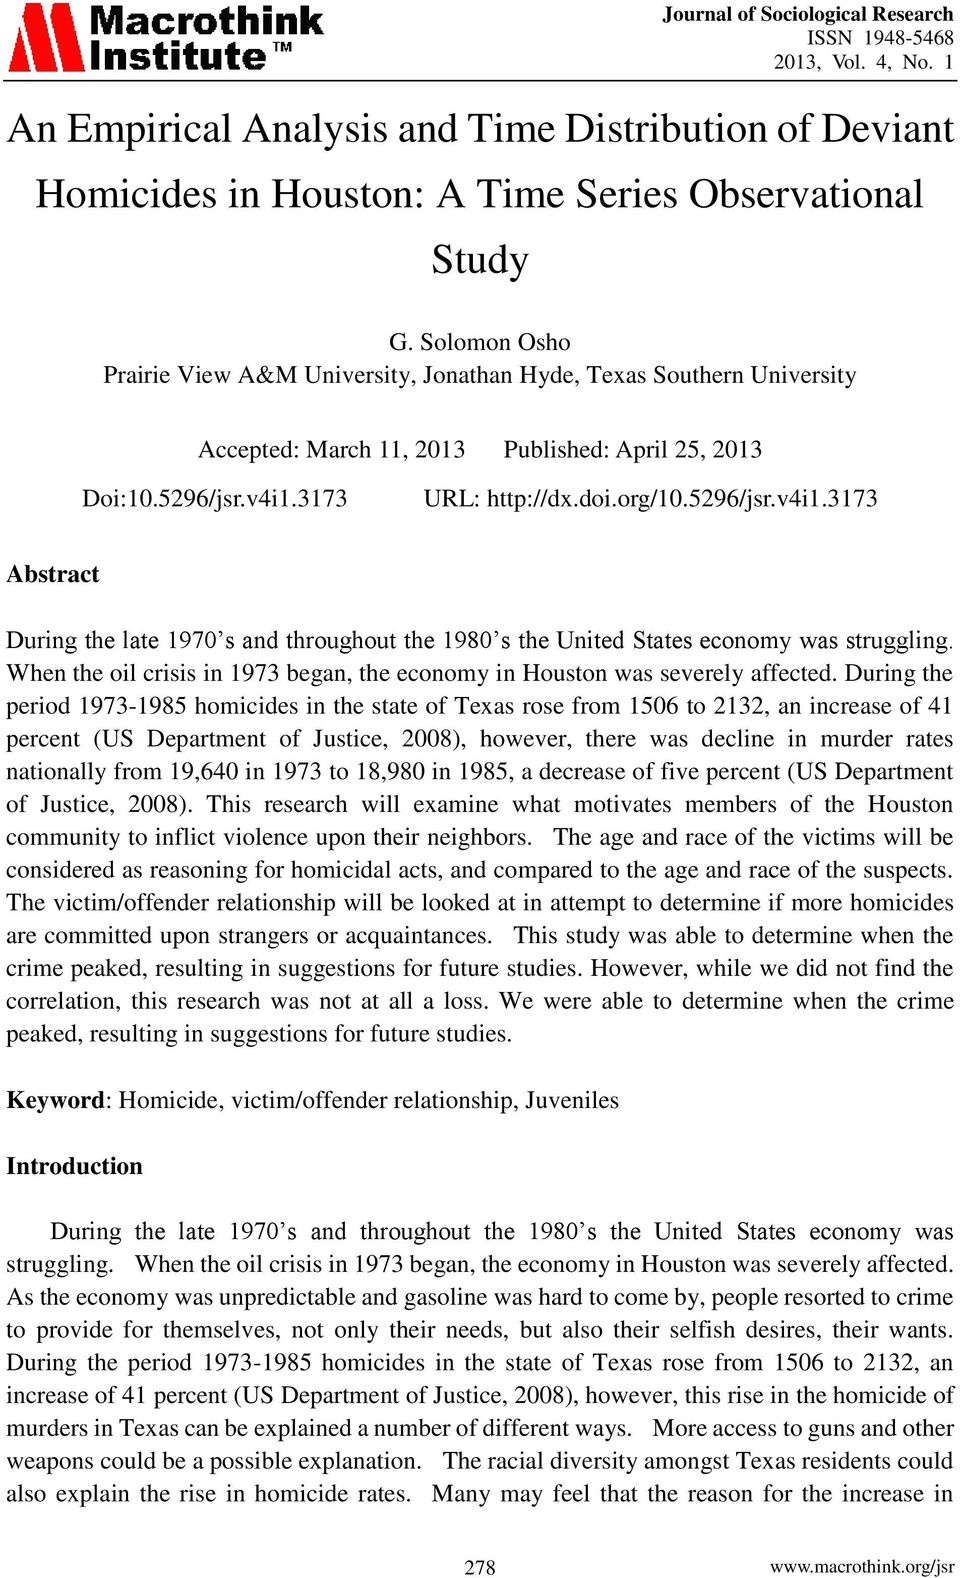 3173 URL: http://dx.doi.org/10.5296/jsr.v4i1.3173 Abstract During the late 1970 s and throughout the 1980 s the United States economy was struggling.